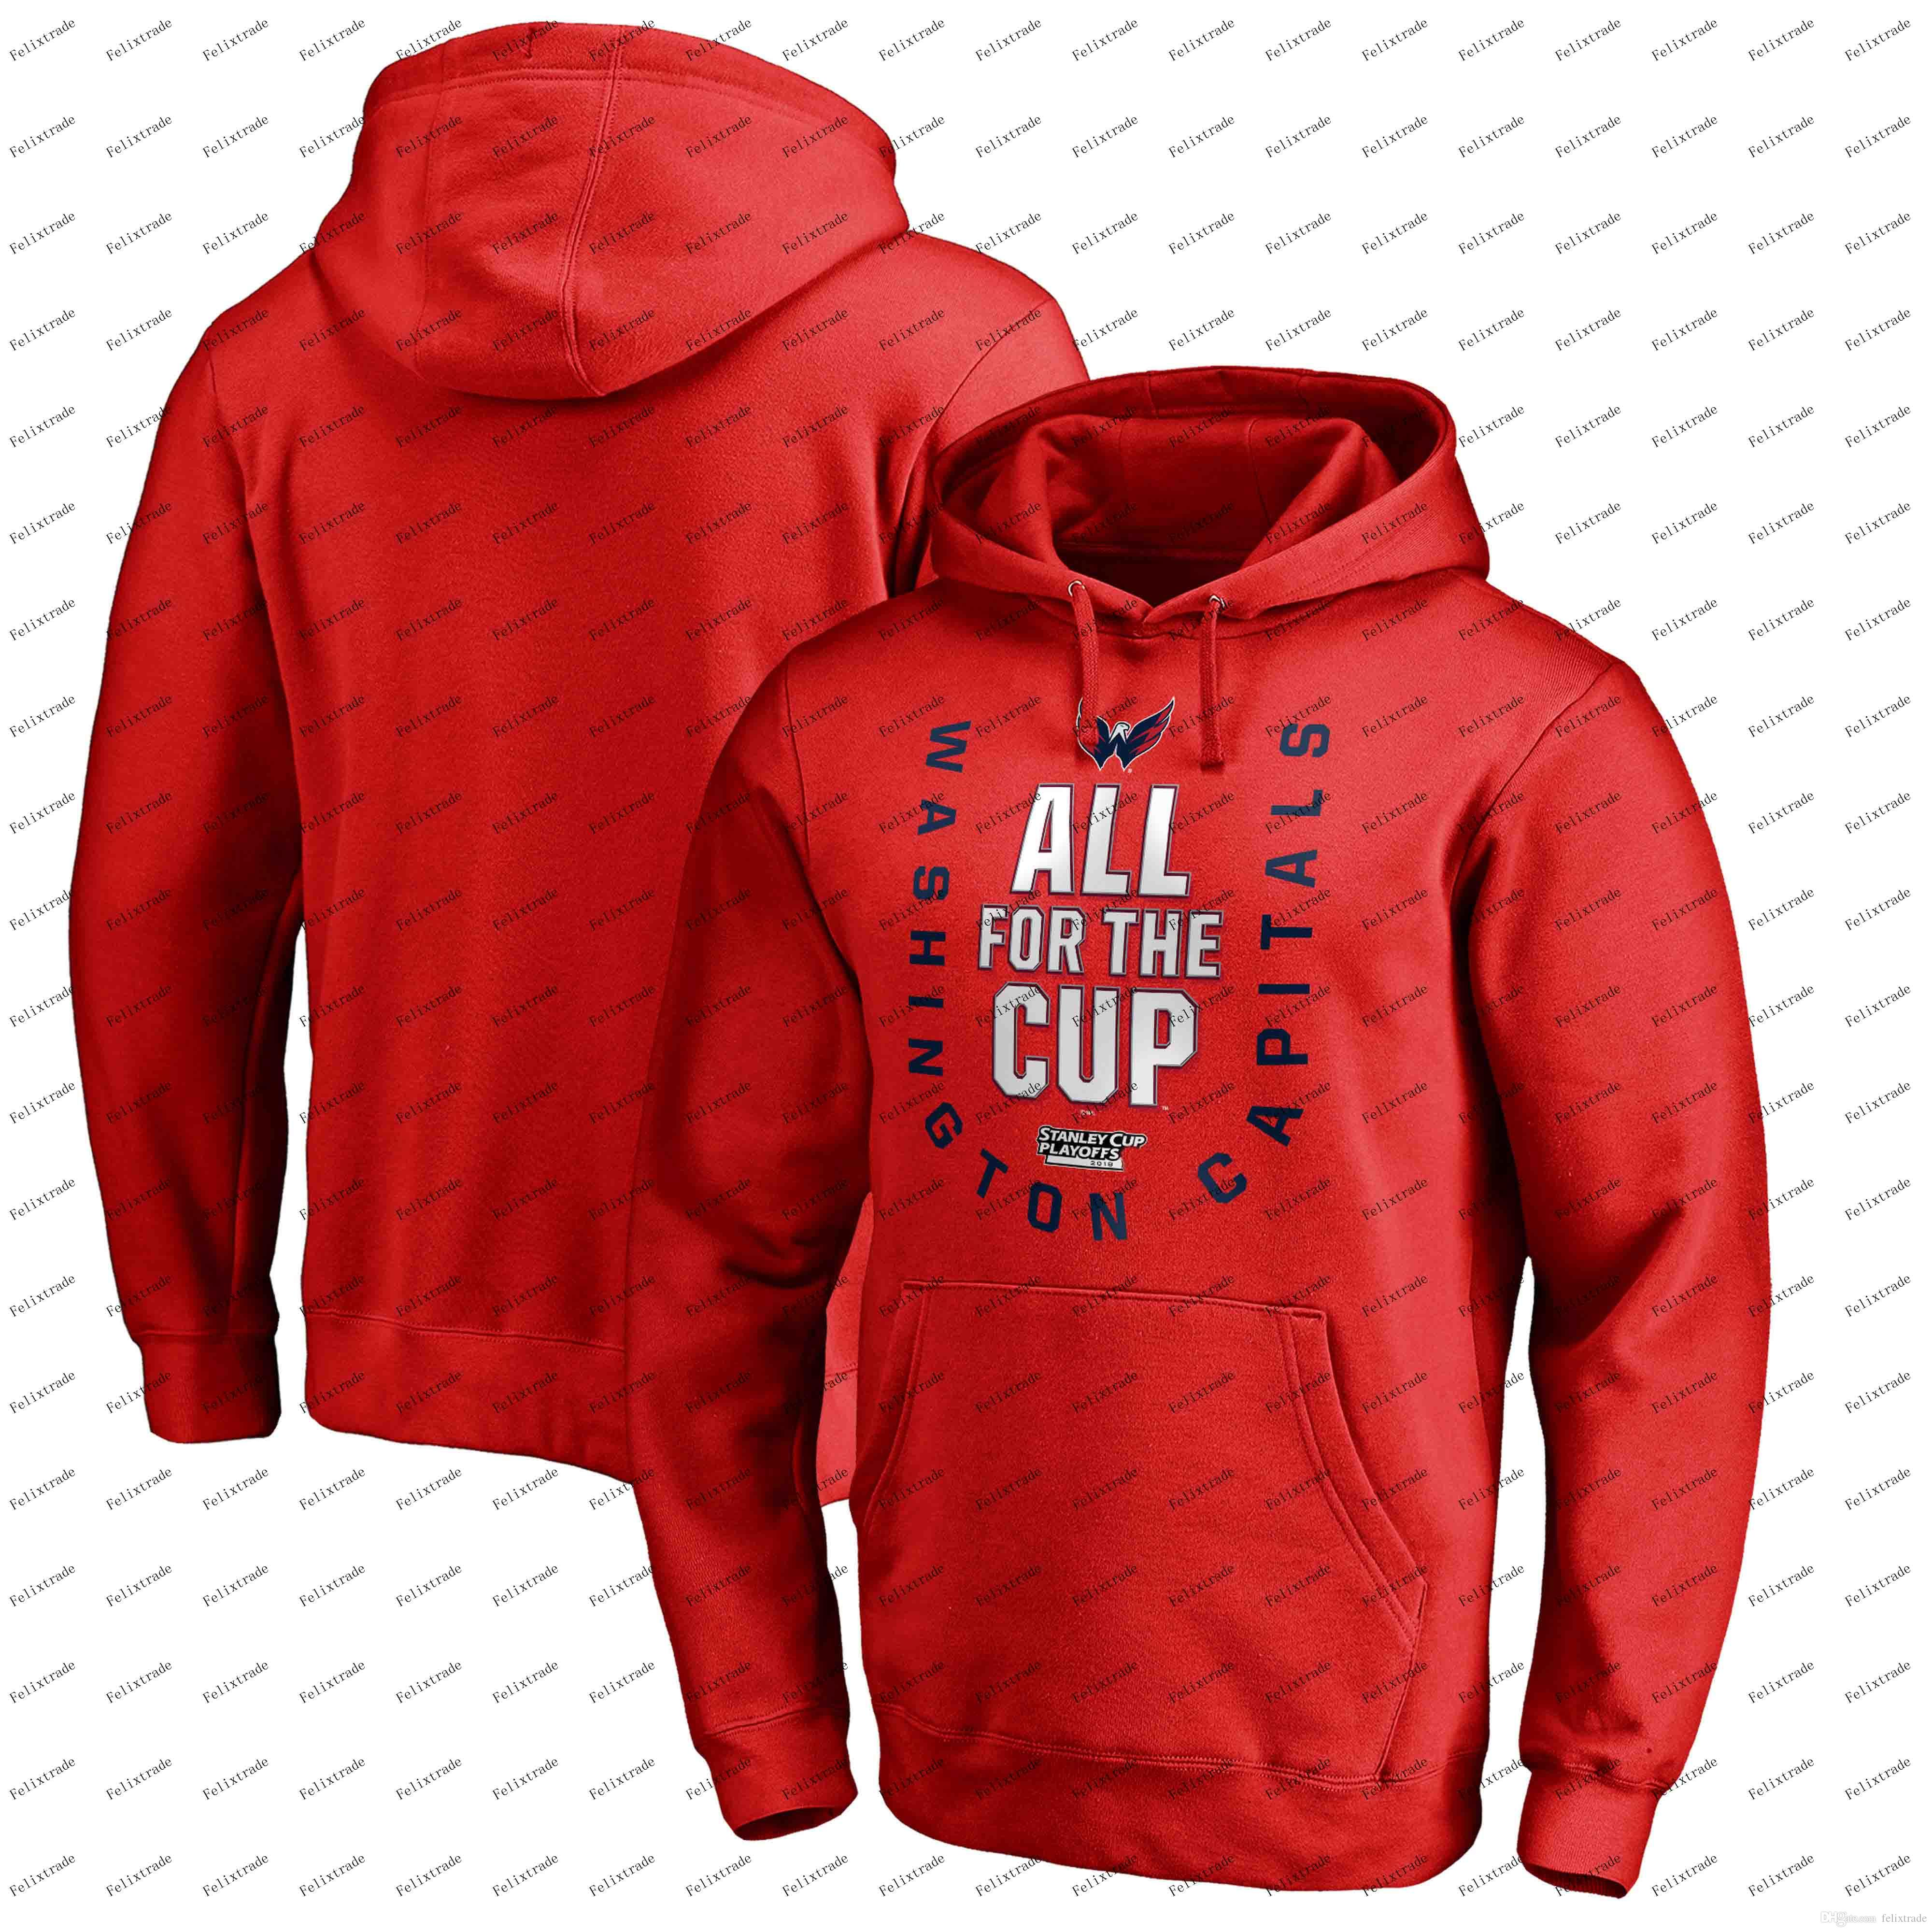 Washington Capitals 2018 Stanley Cup Playoffs Hoodie Men Women Youth Red  Bound Behind The Net Pullover Sweatshirts UK 2019 From Felixtrade 966a22228